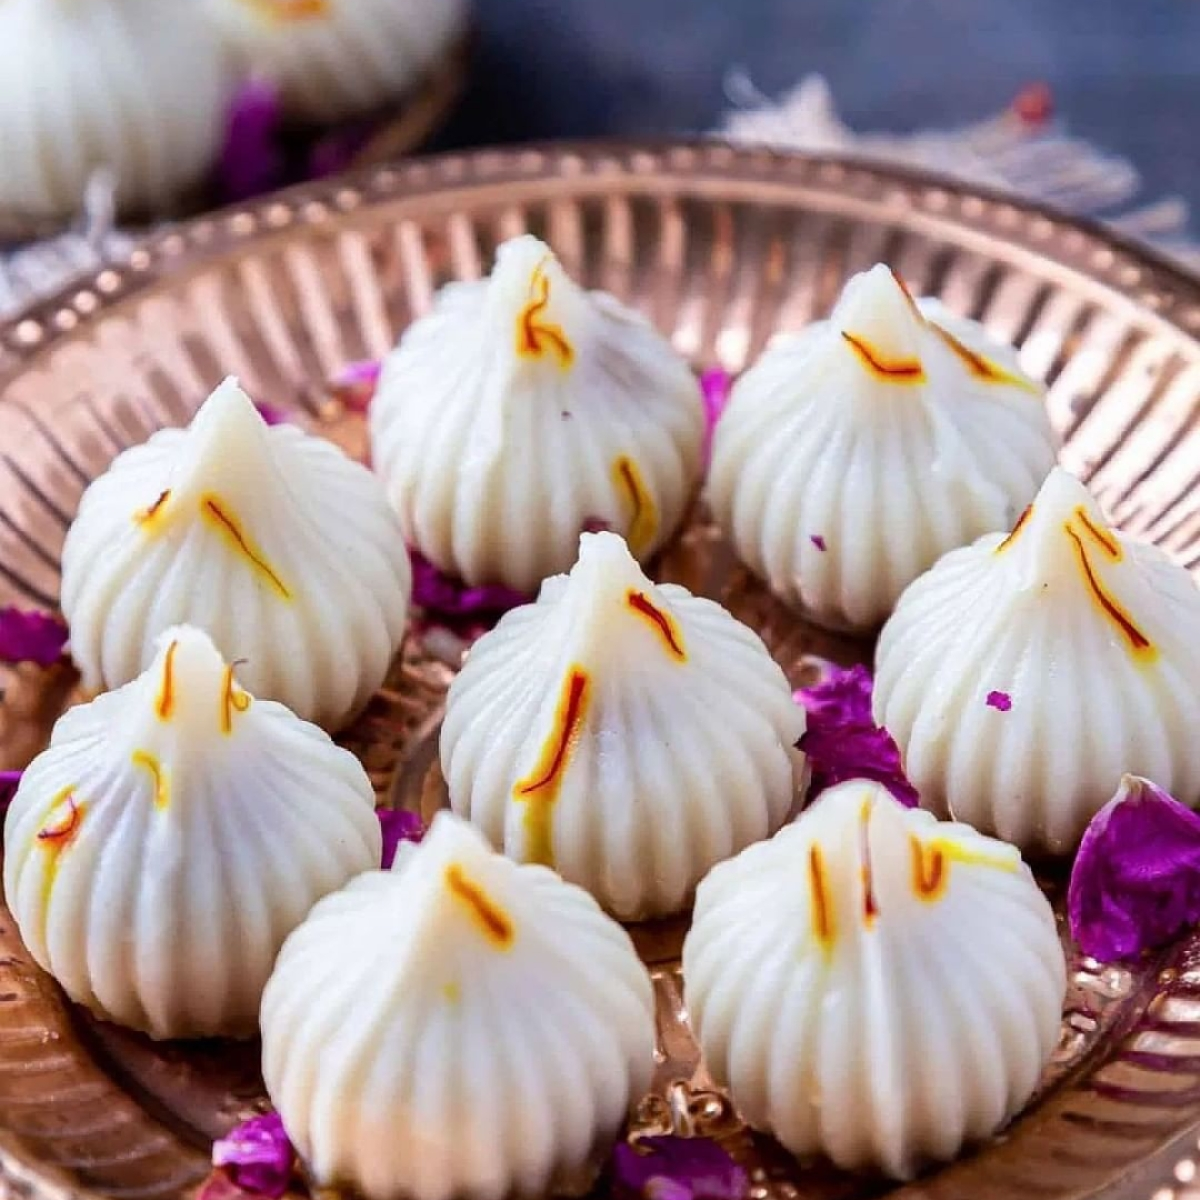 Ganesh Chaturthi 2020: Easy modak recipes to try at home